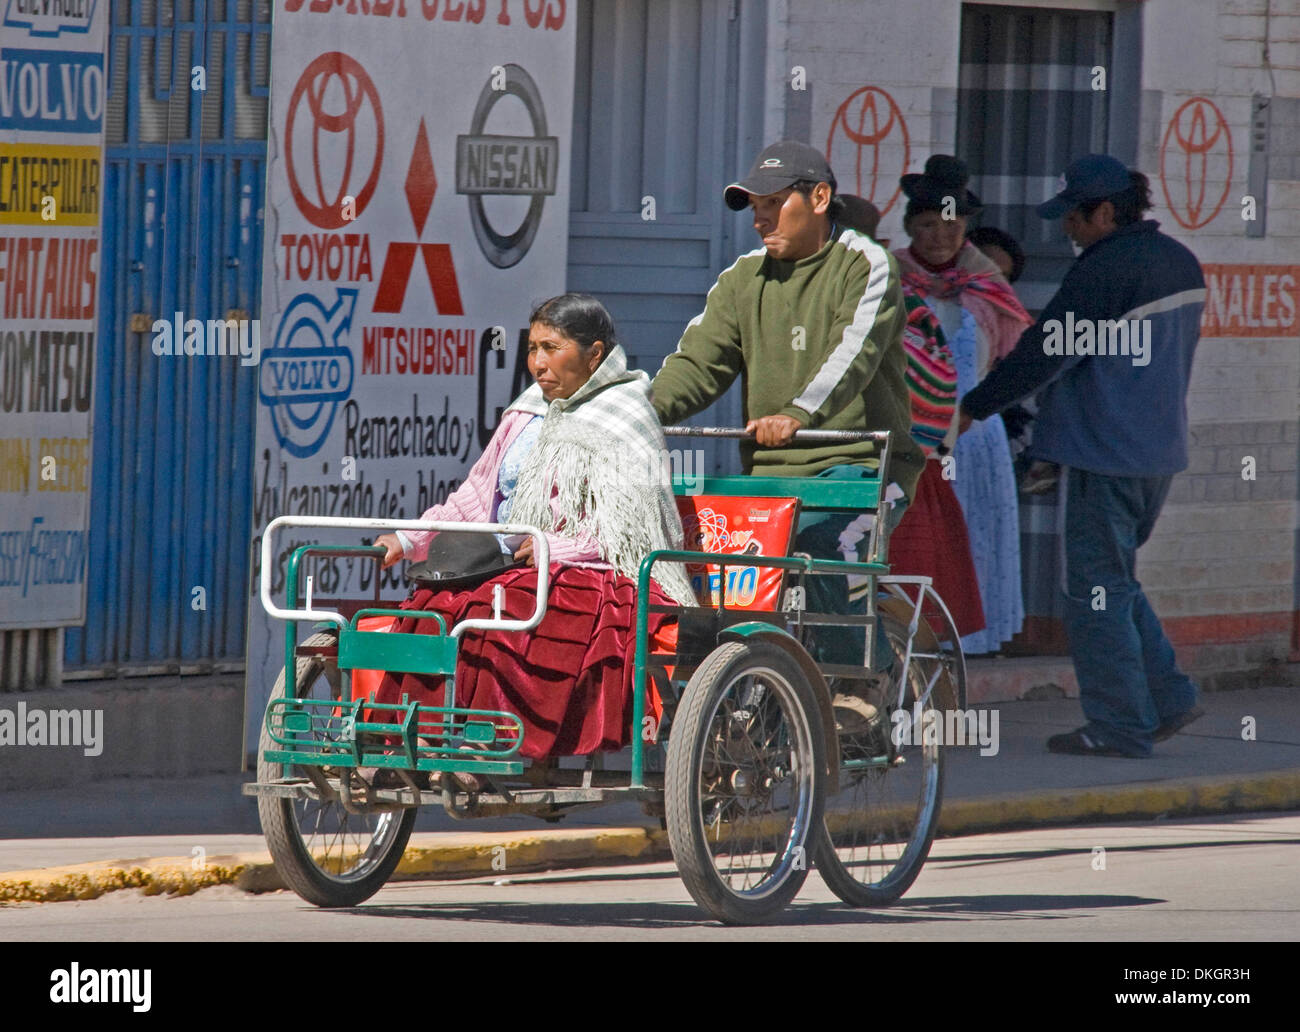 Indigenous woman in traditional dress riding in bicycle taxi with man  pedalling along city street in